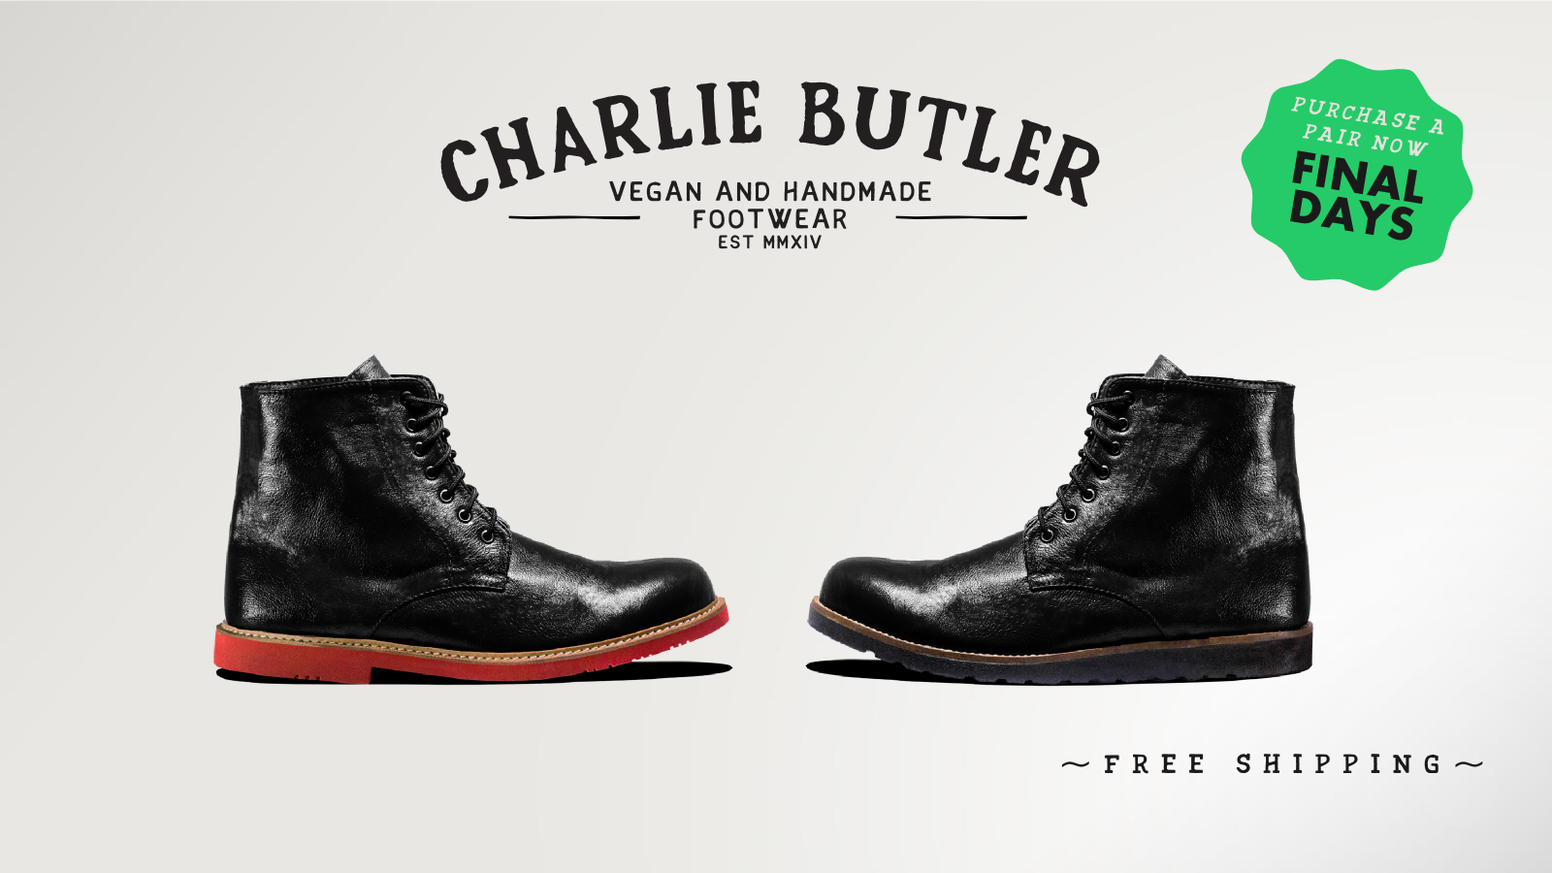 d45b9c8e741a Charlie Butler  A beautiful handmade shoe for men   women by Faran ...